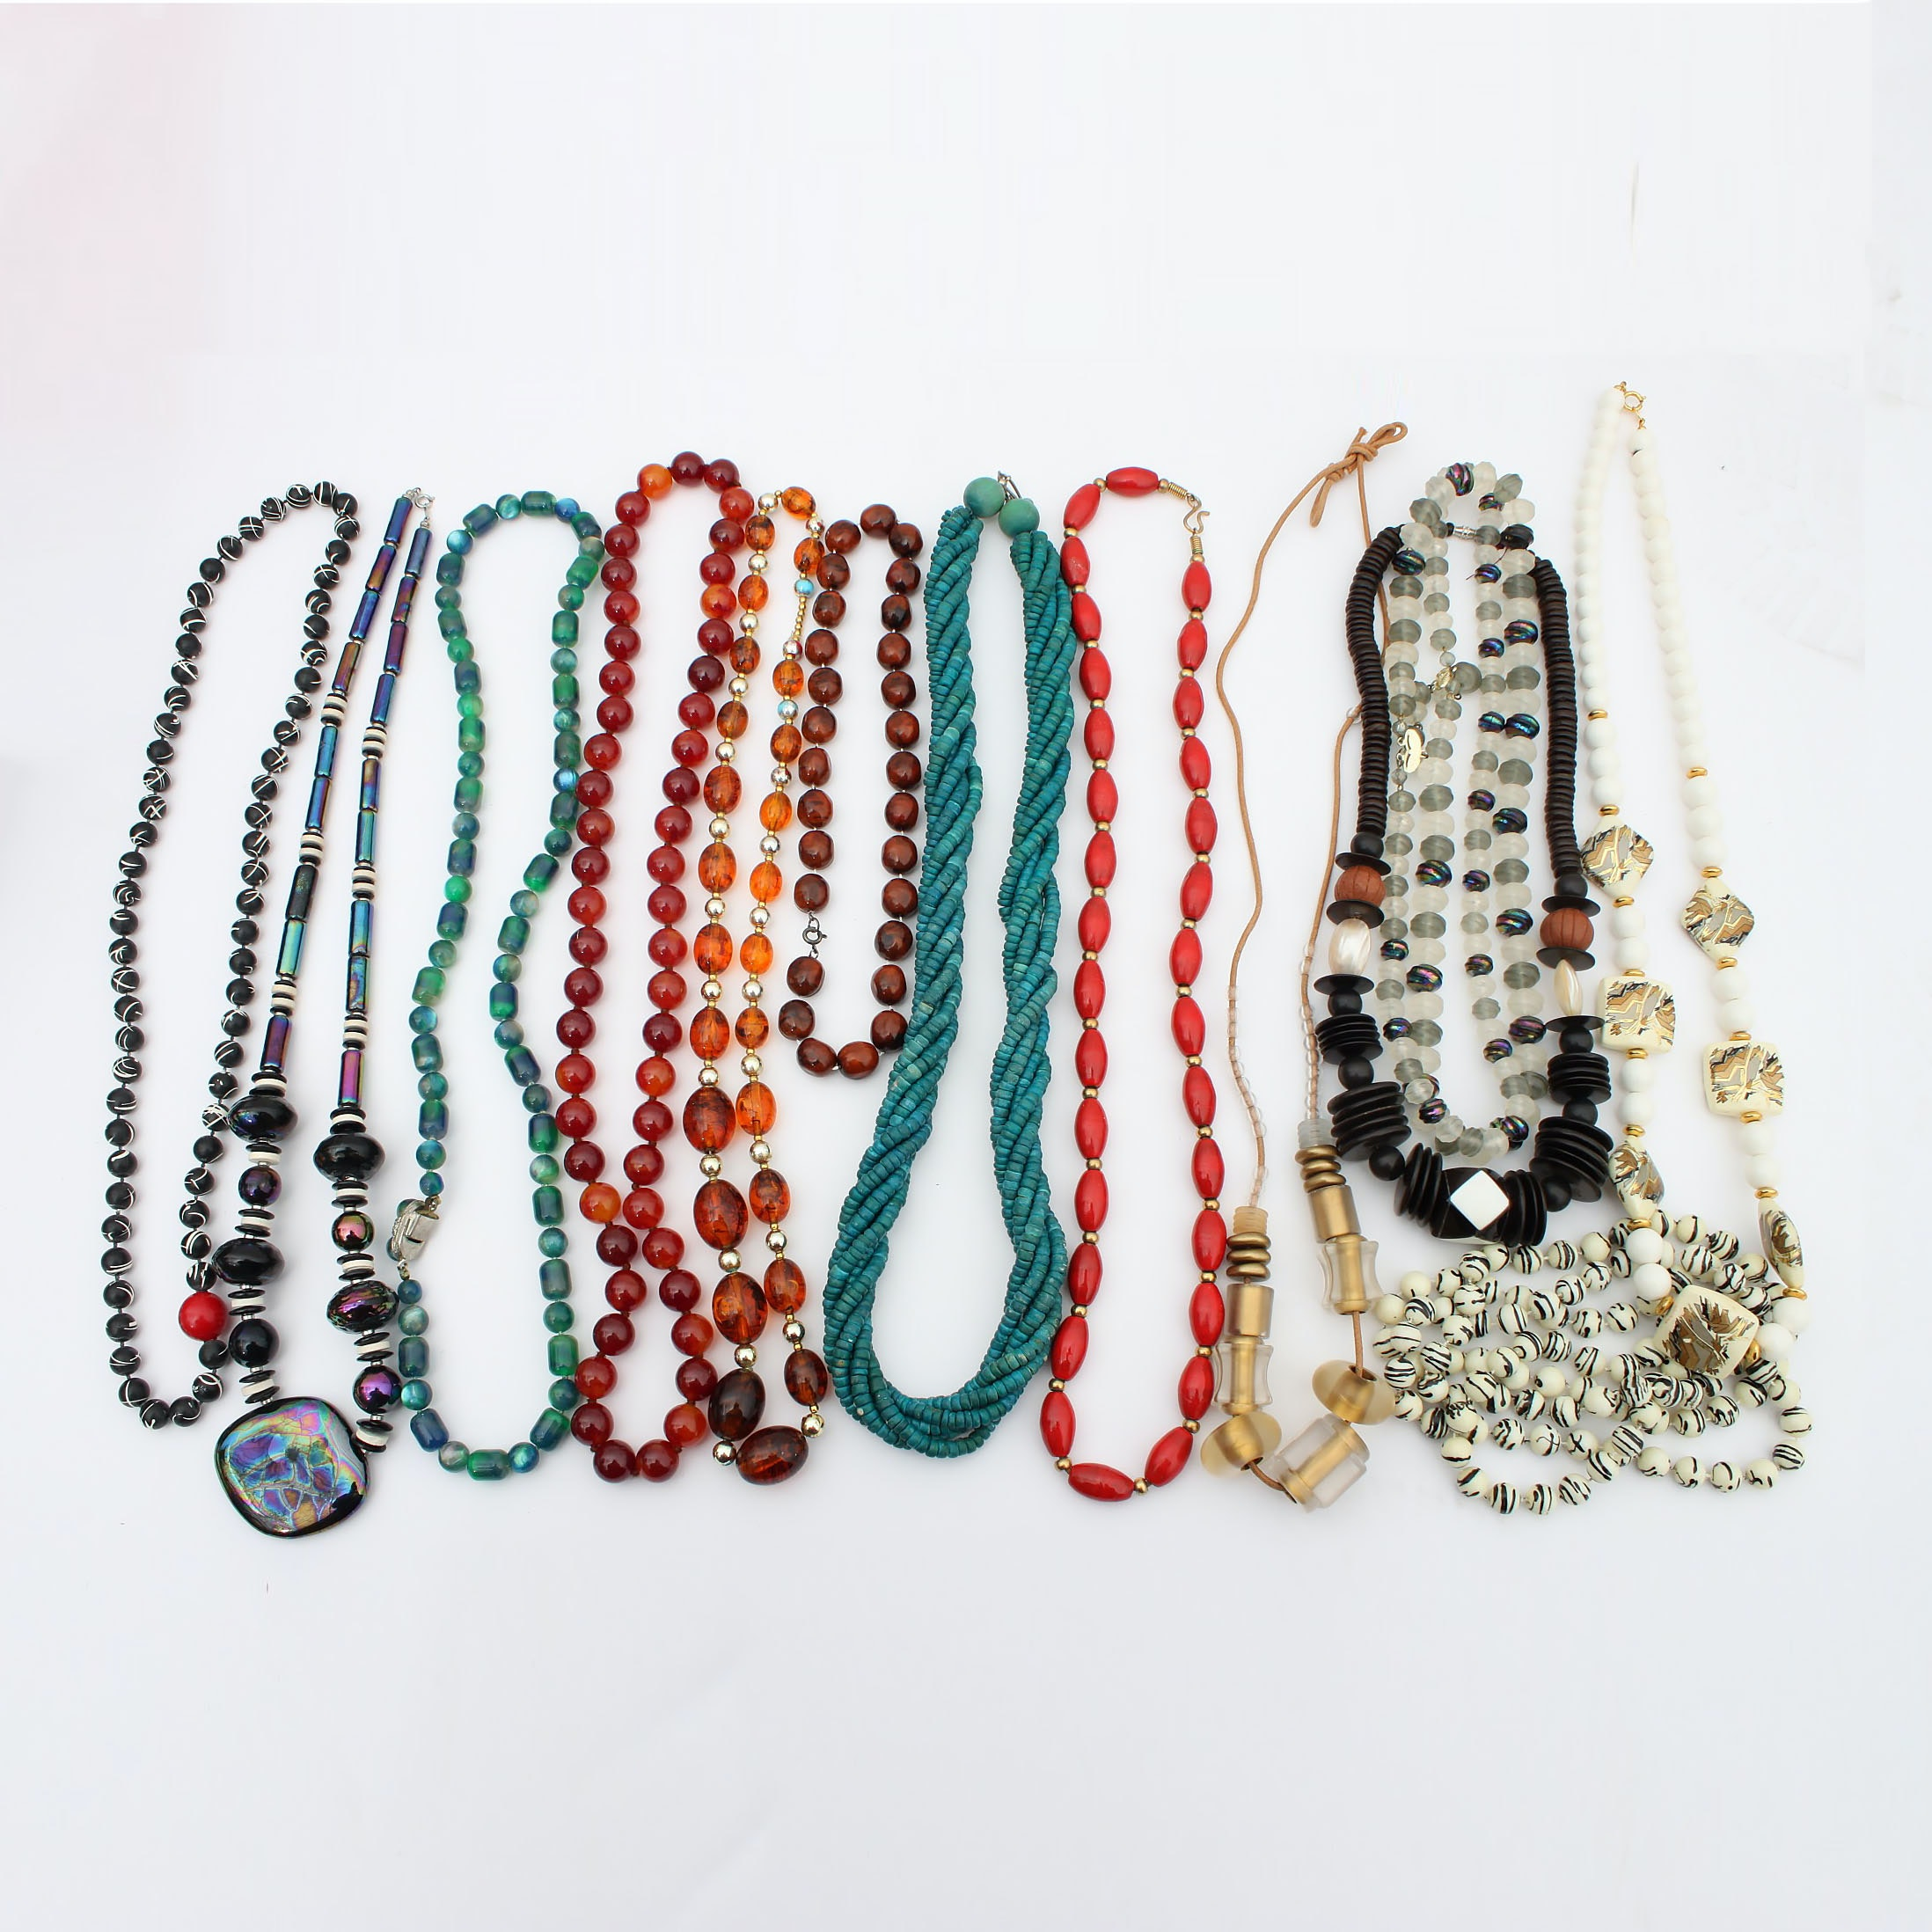 Vintage Beaded Costume Necklaces